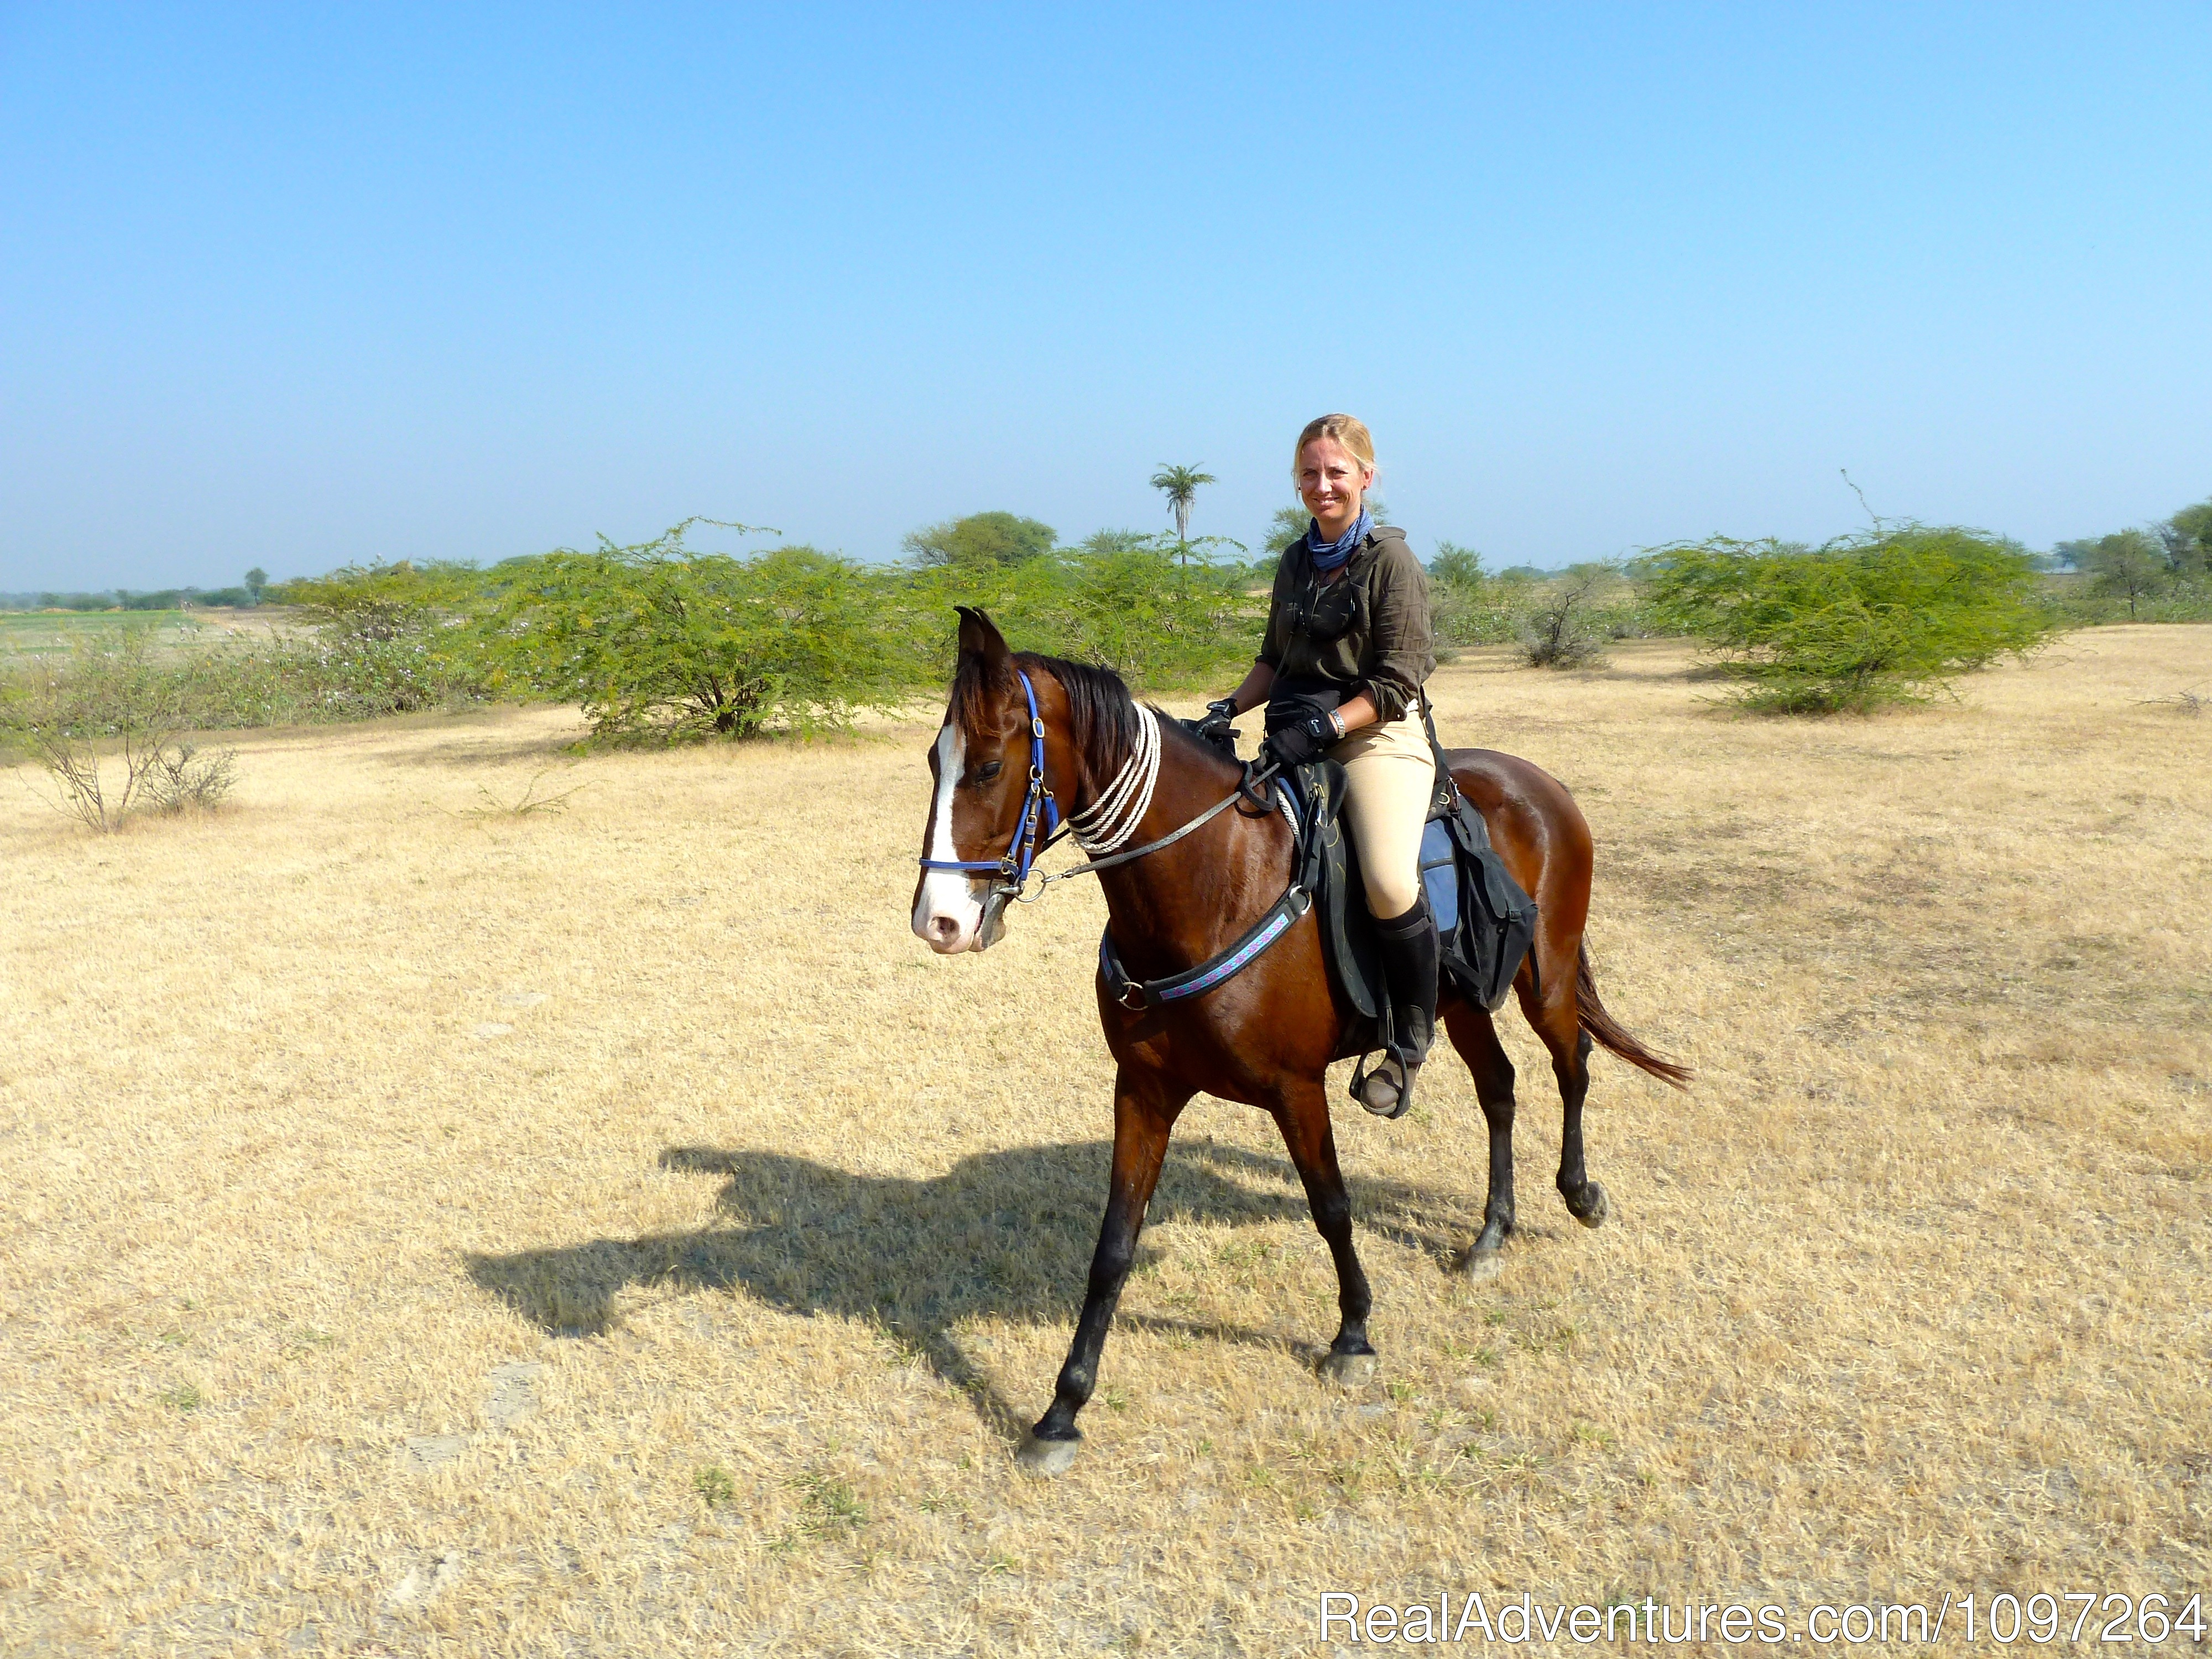 Marwari mare and rider